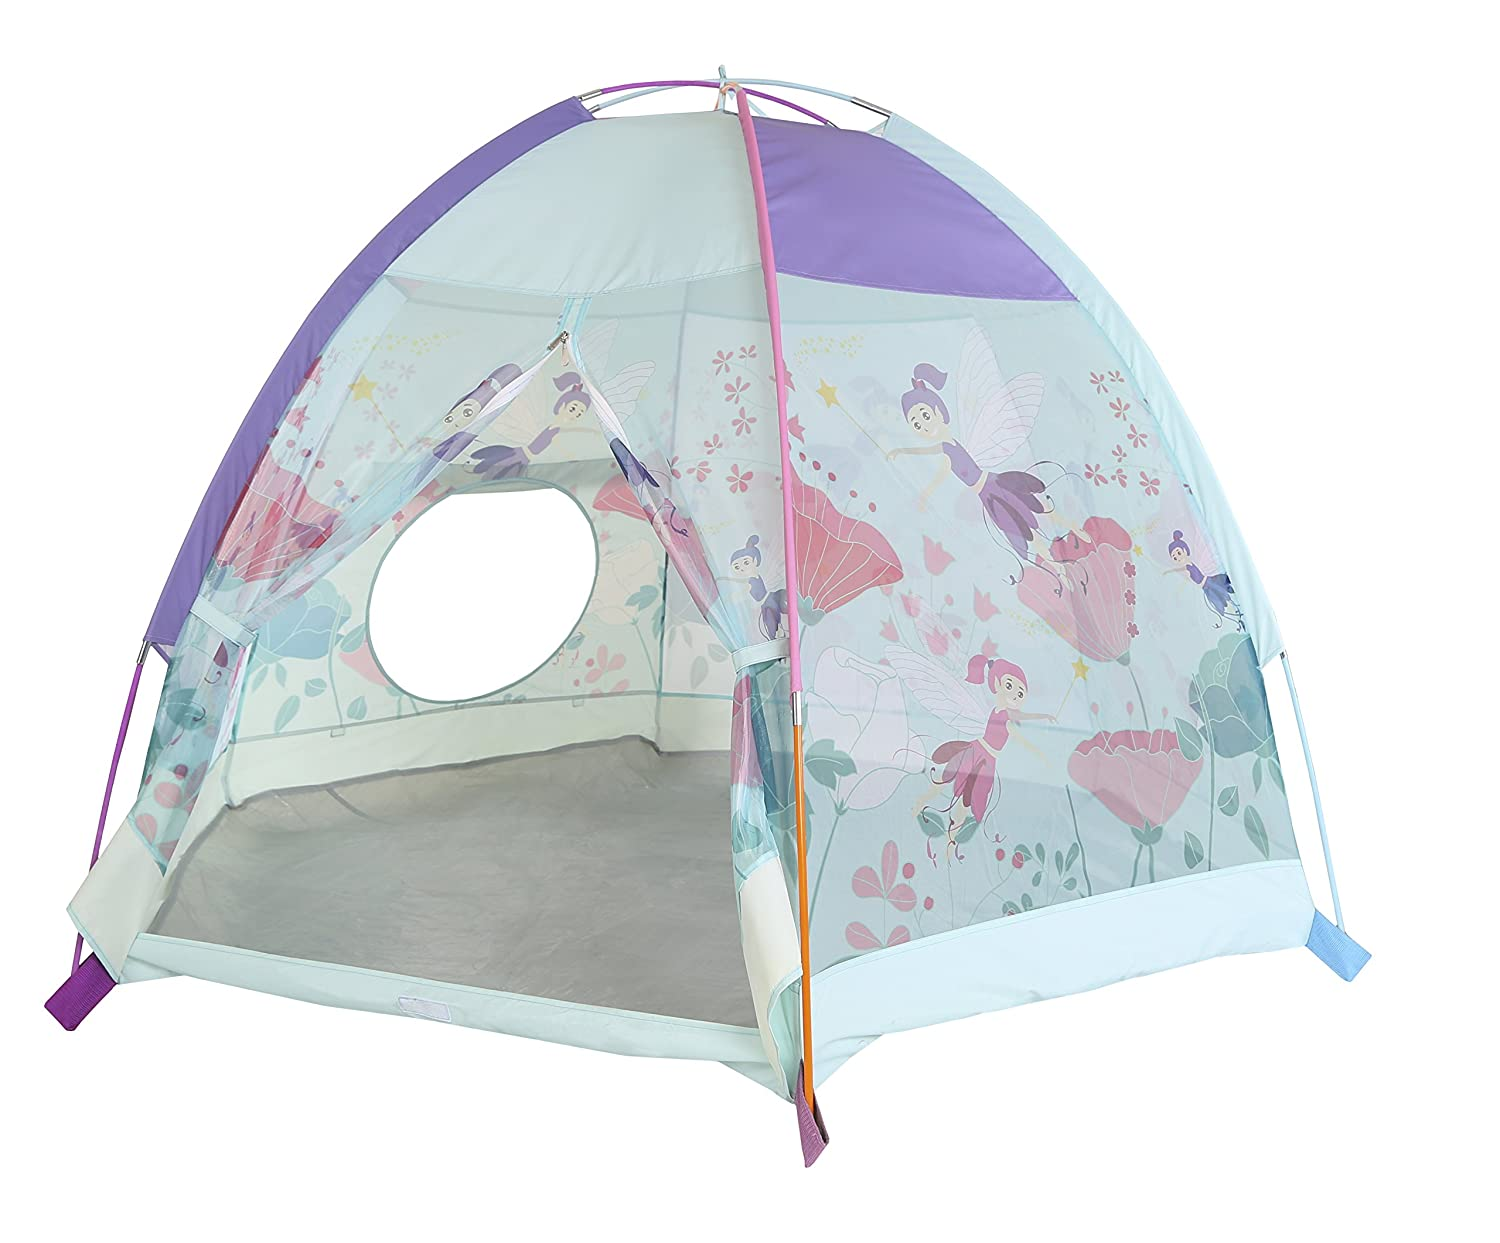 72 x 60 x 49 Pacific Play Tents 19325 Kids Come Fly with Me Dome Tent for Indoor Outdoor Fun